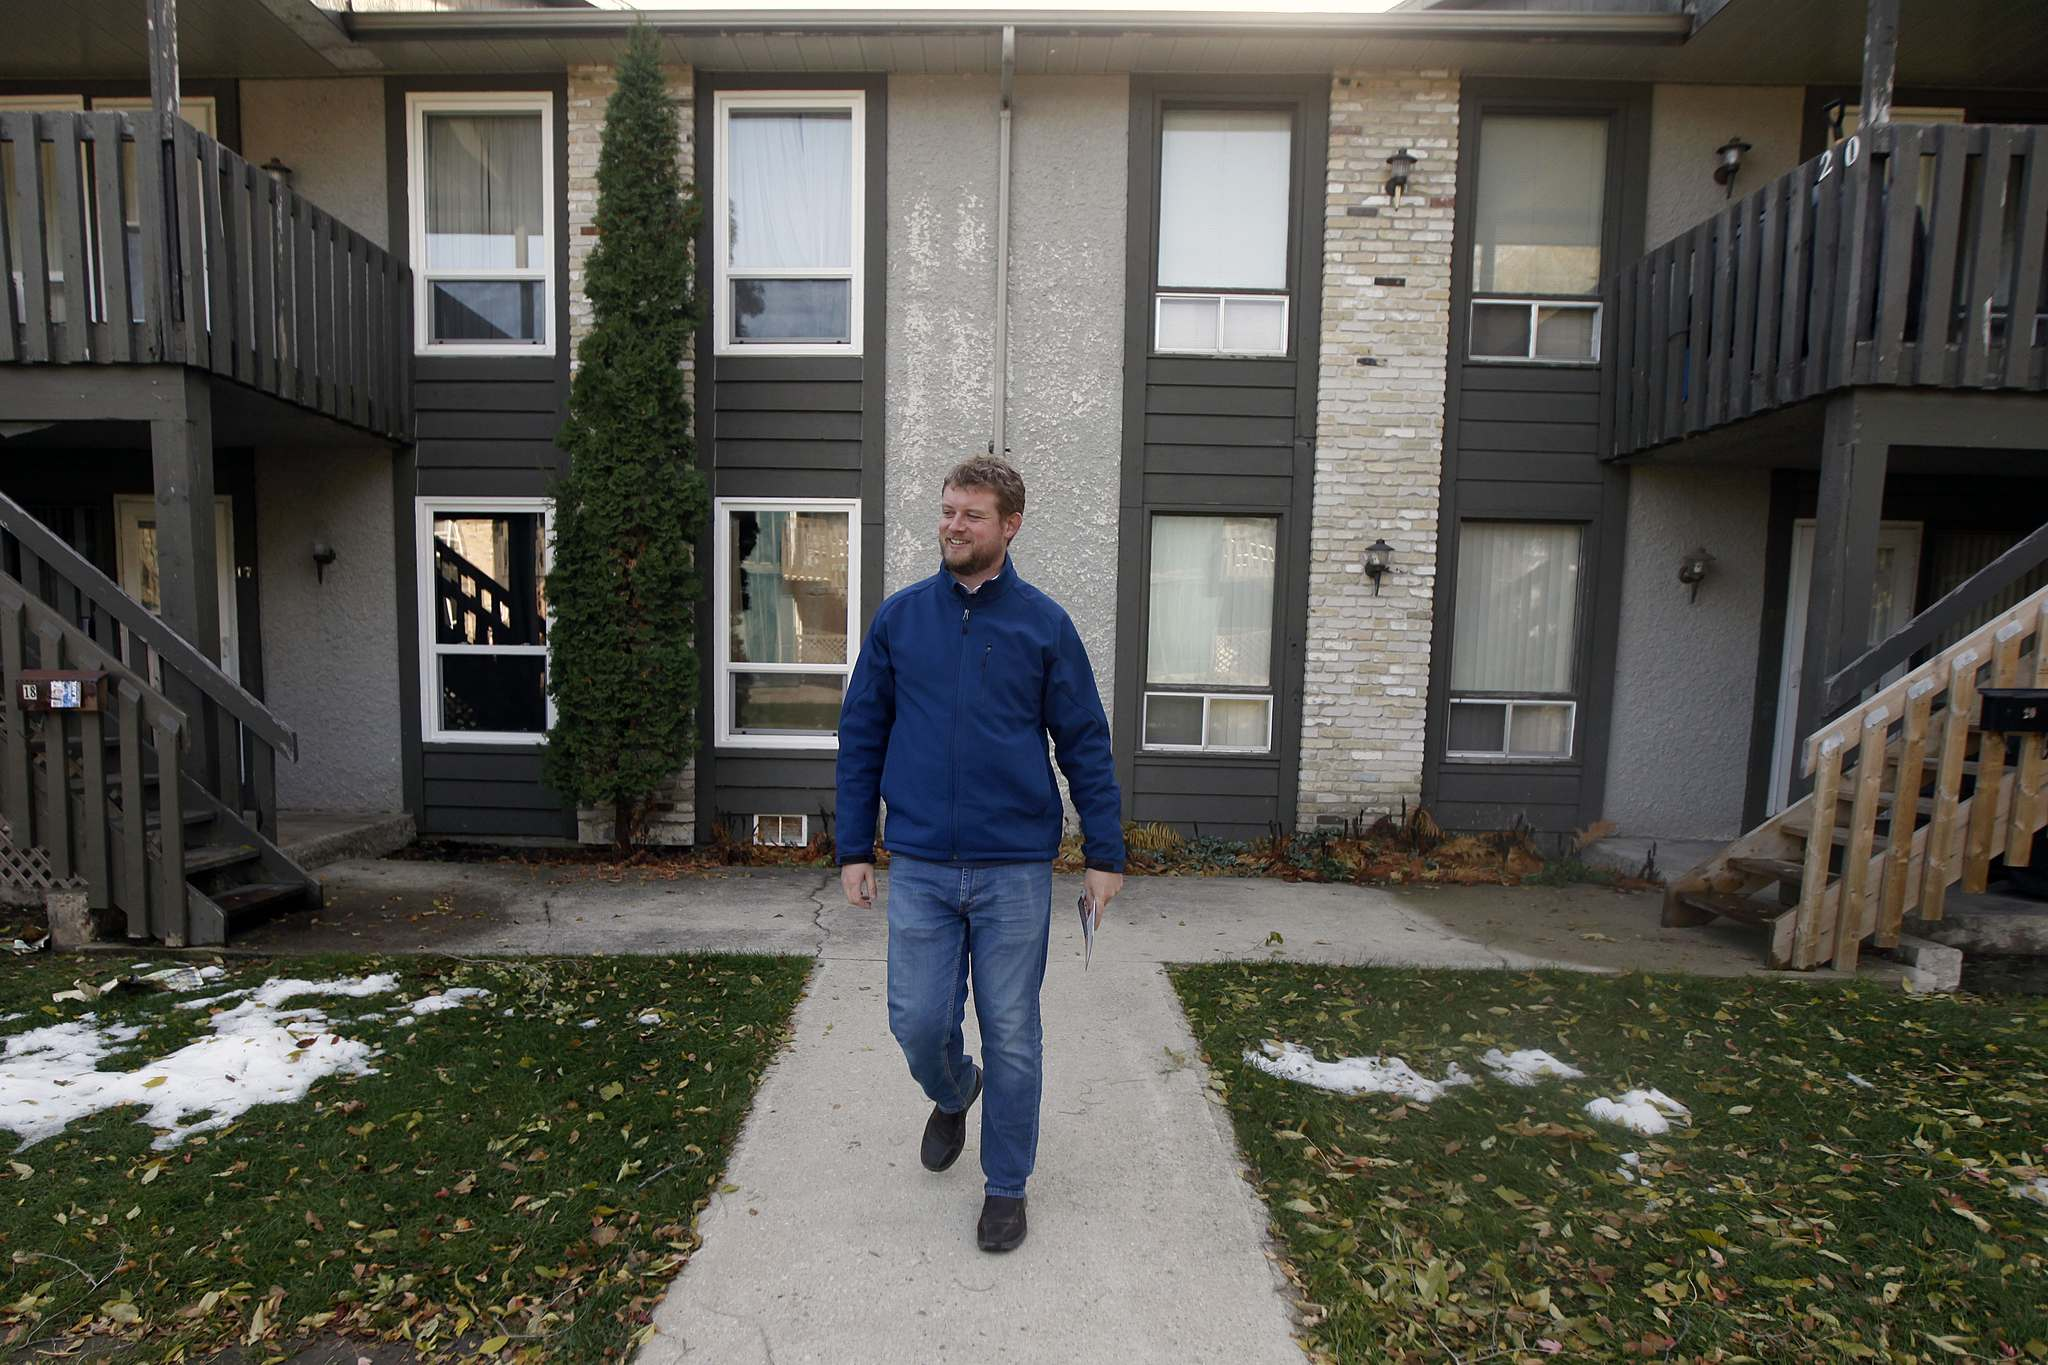 Daniel Blaikie says the close race between him and former MP Lawrence Toet has been a constant reminder of the need to work hard in the constituancy. (Phil Hossack / Winnipeg Free Press)</p>